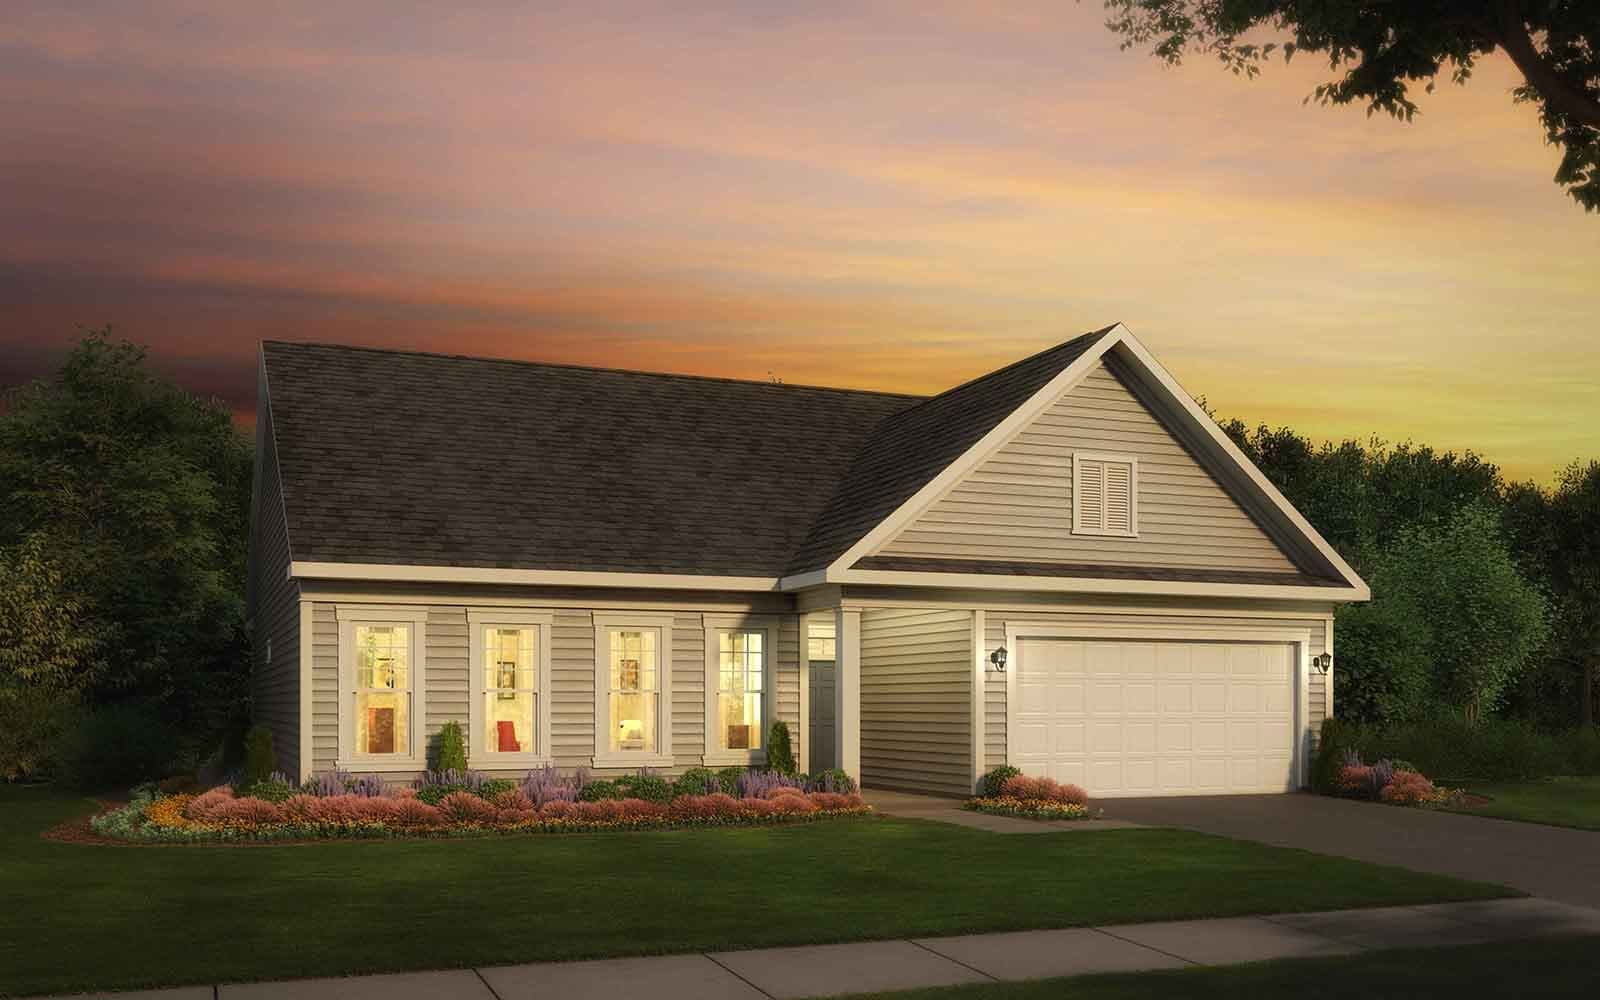 Exterior:Elevation 1 of the Savoy II a home design offered at Heritage Shores in Bridgeville DE by Brookfield Residential